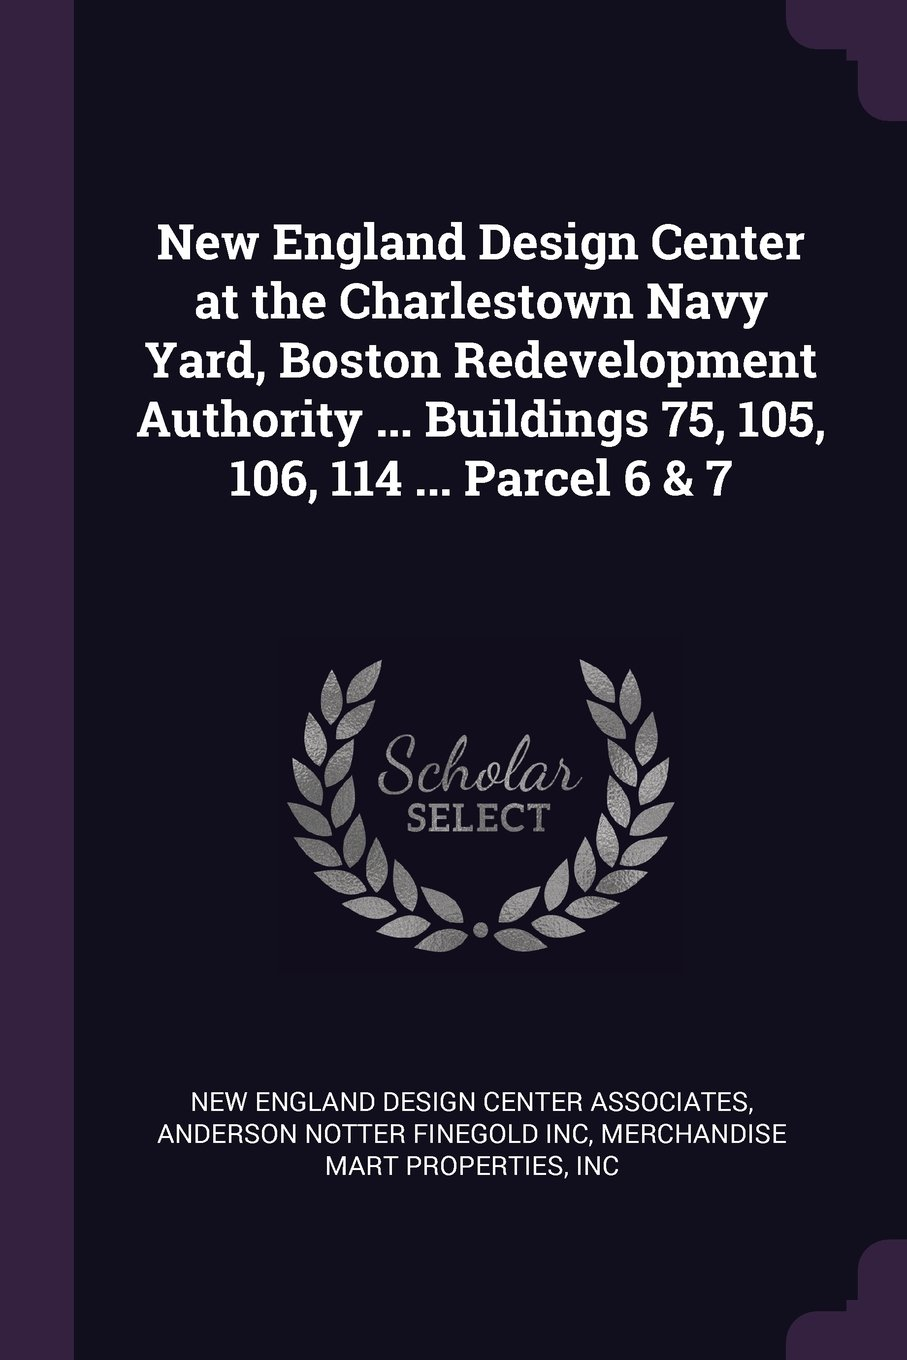 New England Design Center at the Charlestown Navy Yard, Boston Redevelopment Authority Buildings 75, 105, 106, 114 Parcel 6 & 7 PDF